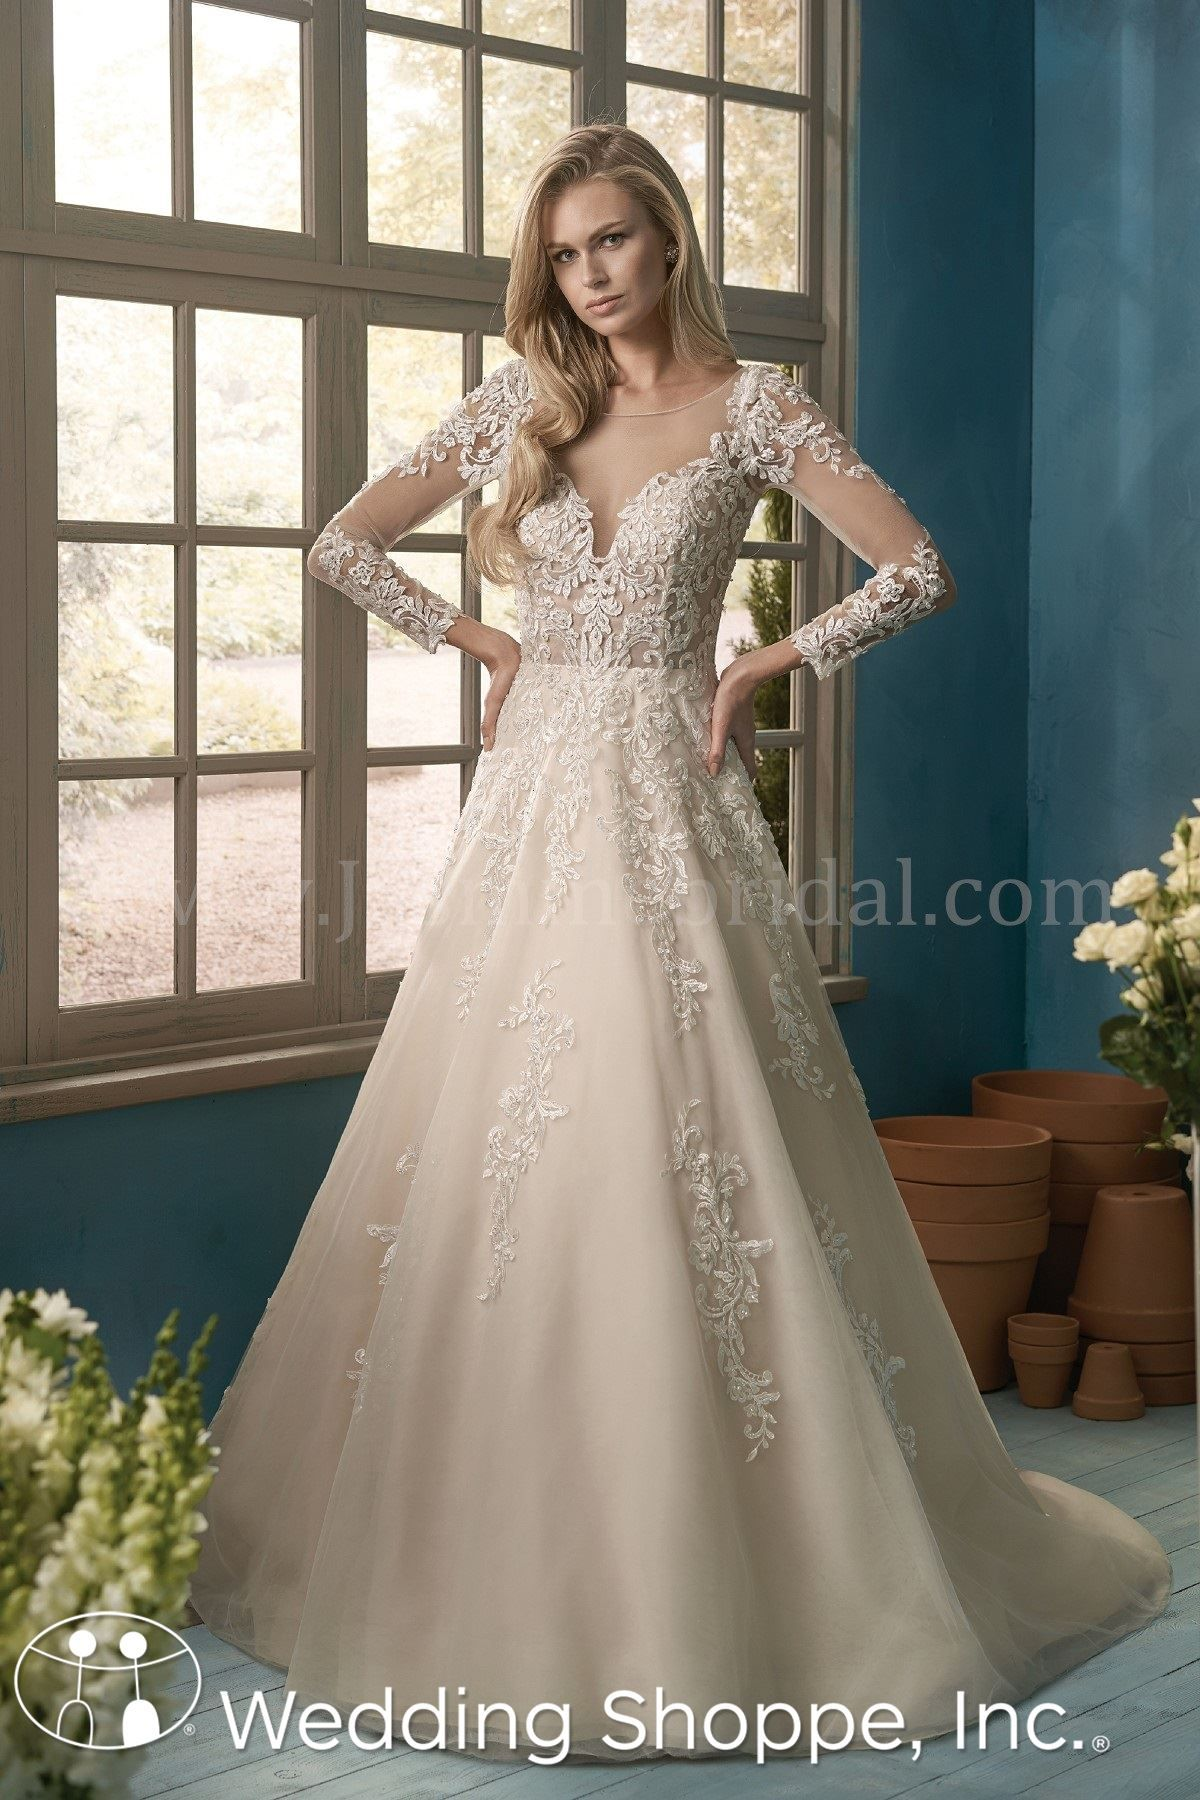 Design your own wedding dress cheap  This gorgeous gown features a decadent design in layers of tulle